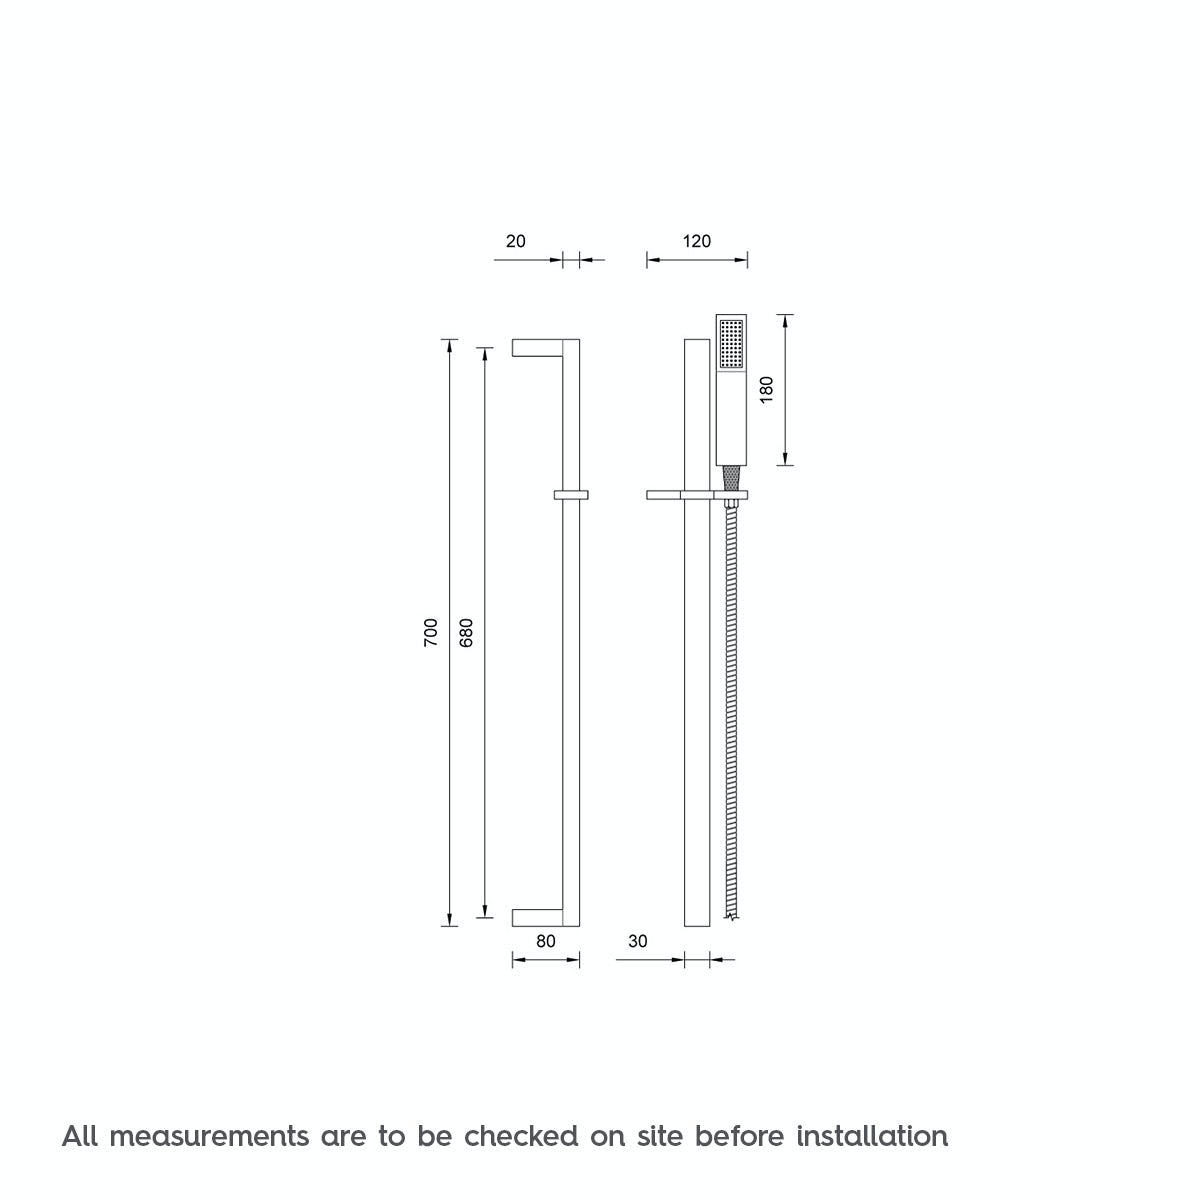 Dimensions for Mode Tetra sliding shower rail kit